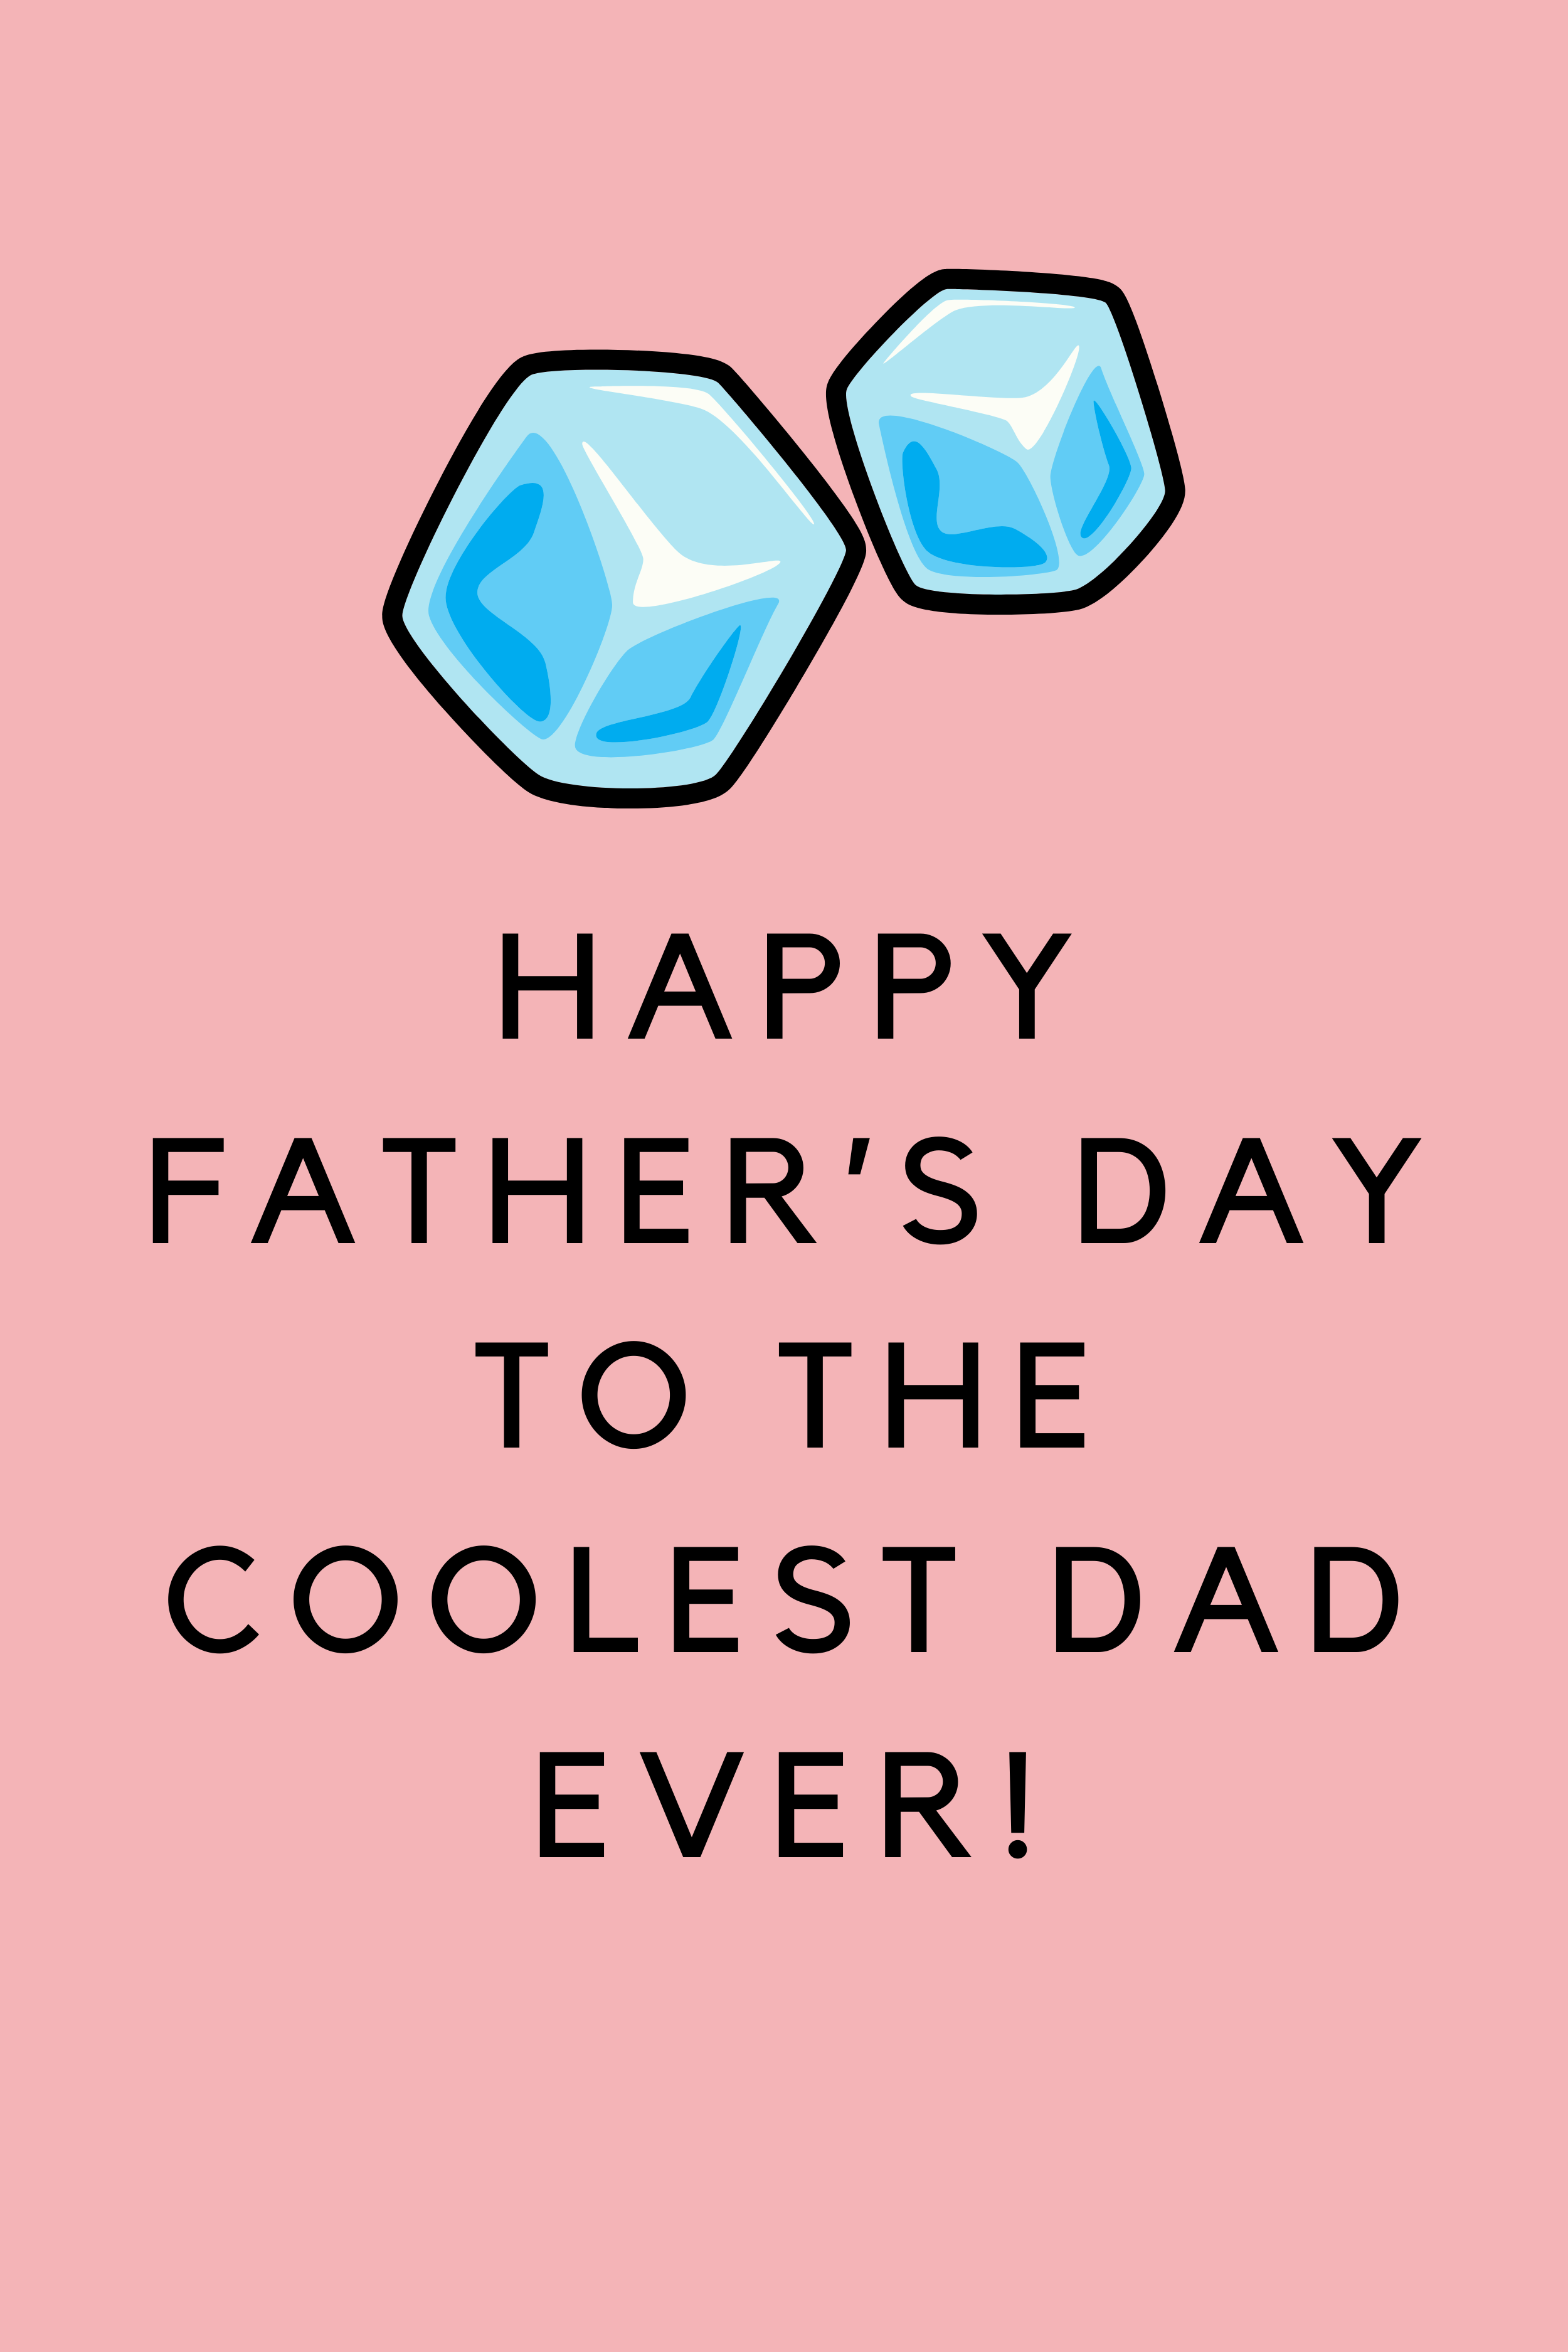 Cool Dad Quotes